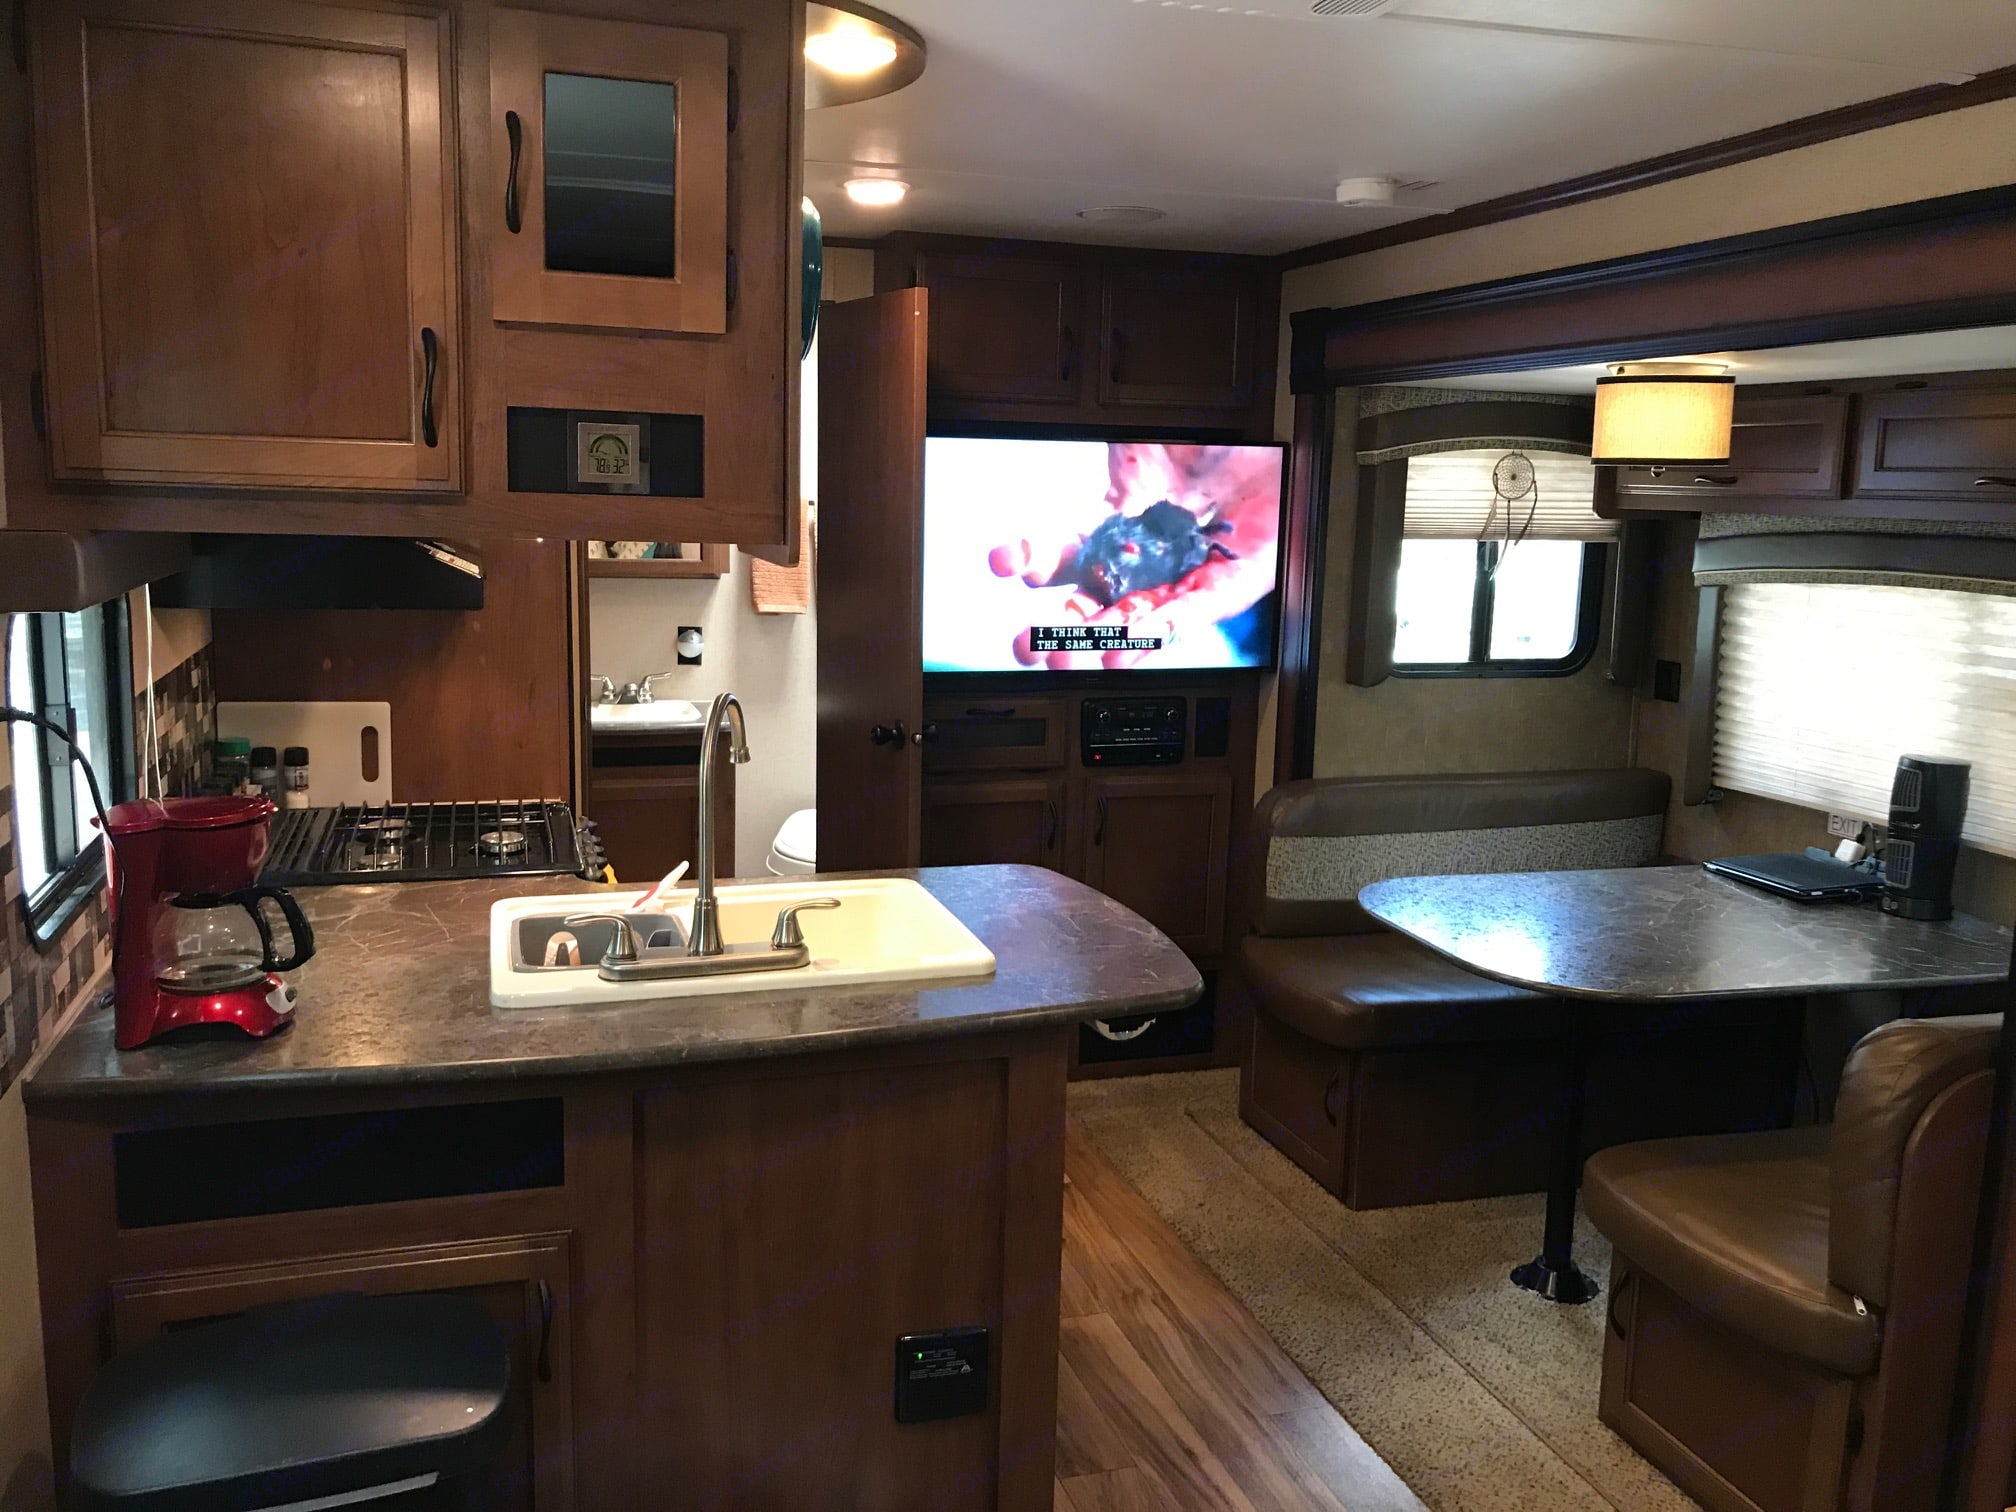 Beautiful Full Kitchen, Countertop, Sink, Stove/Oven, Microwave, Fridge/Freezer, Vent , Drawers/Cabinets, TV (SmartTV), and AM/FM/CD/DVD player with MP3 input and Bluetooth & HDMI connectivity. Jayco Jay Flight 2016